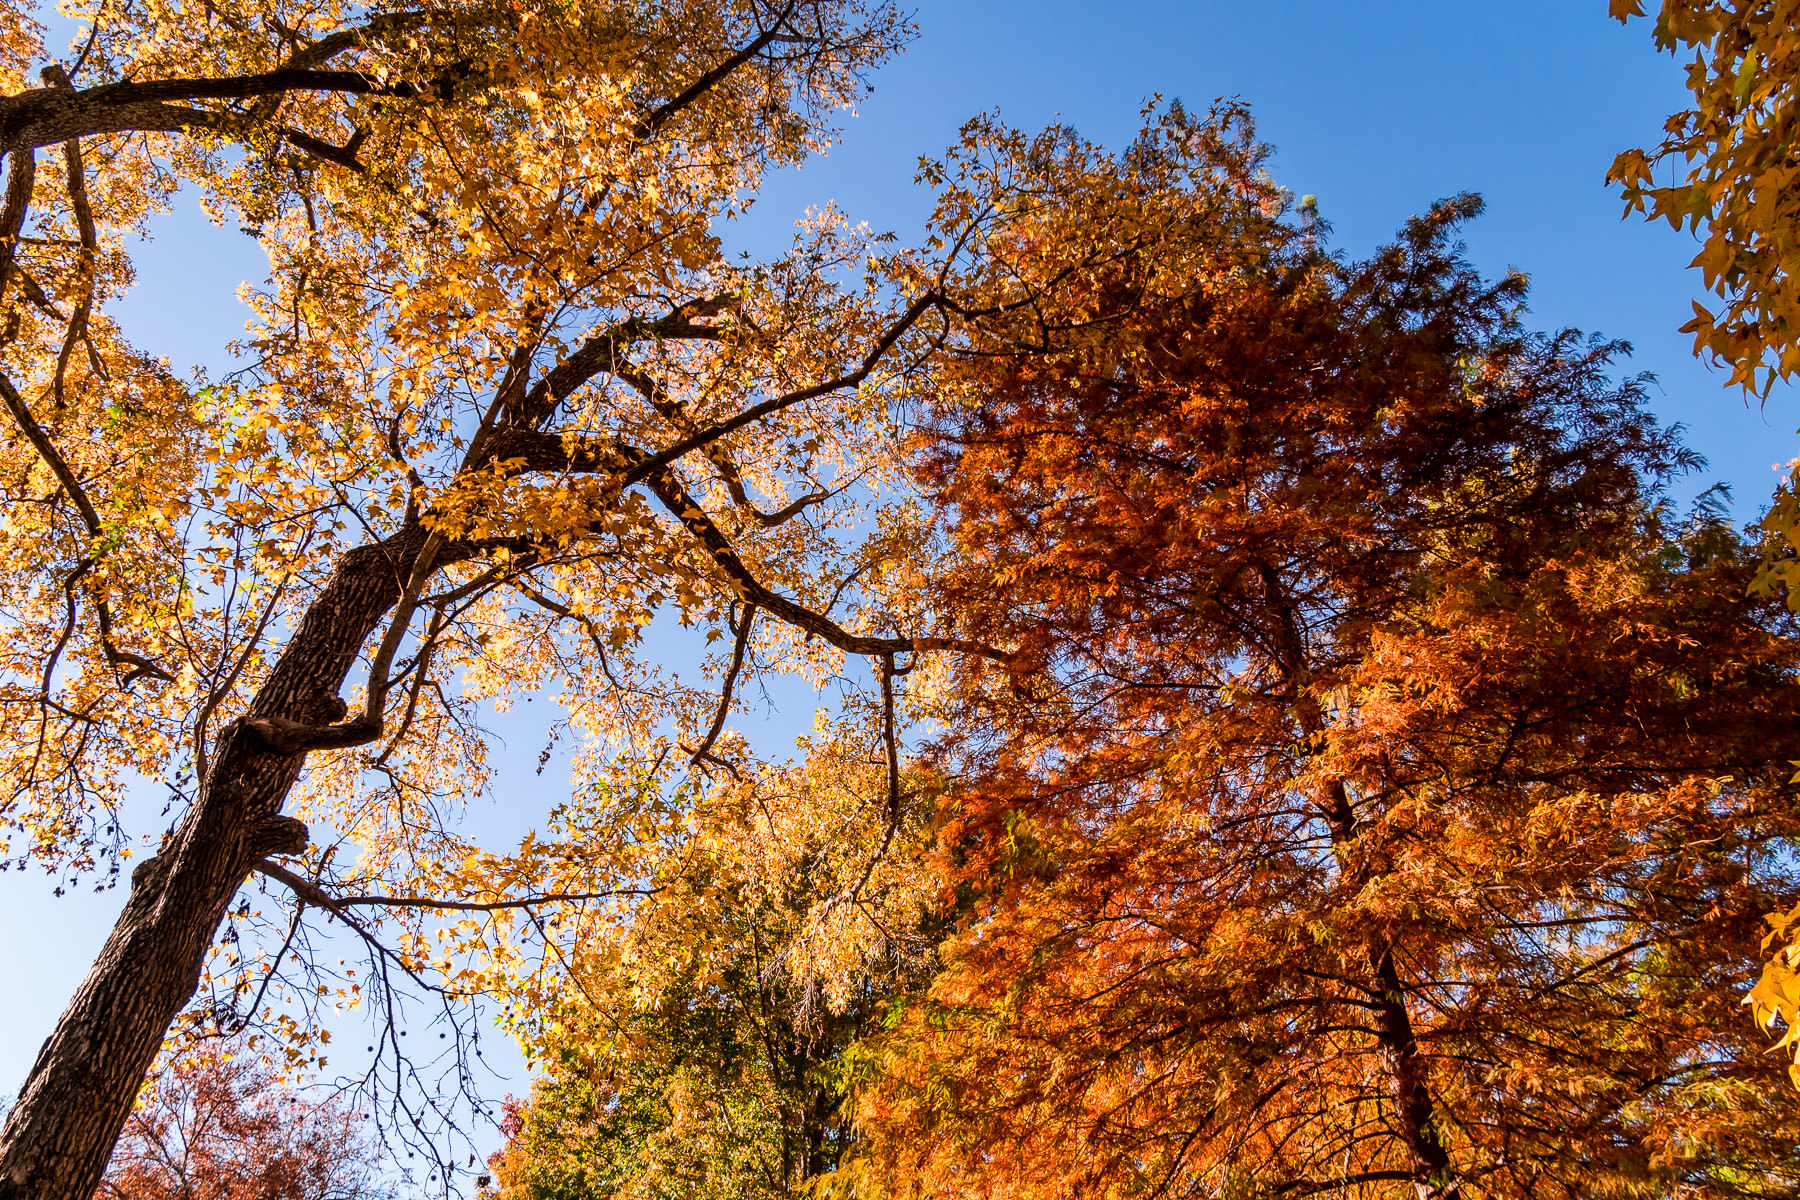 The many colors of autumn trees in Tyler, Texas' Bergfeld Park.